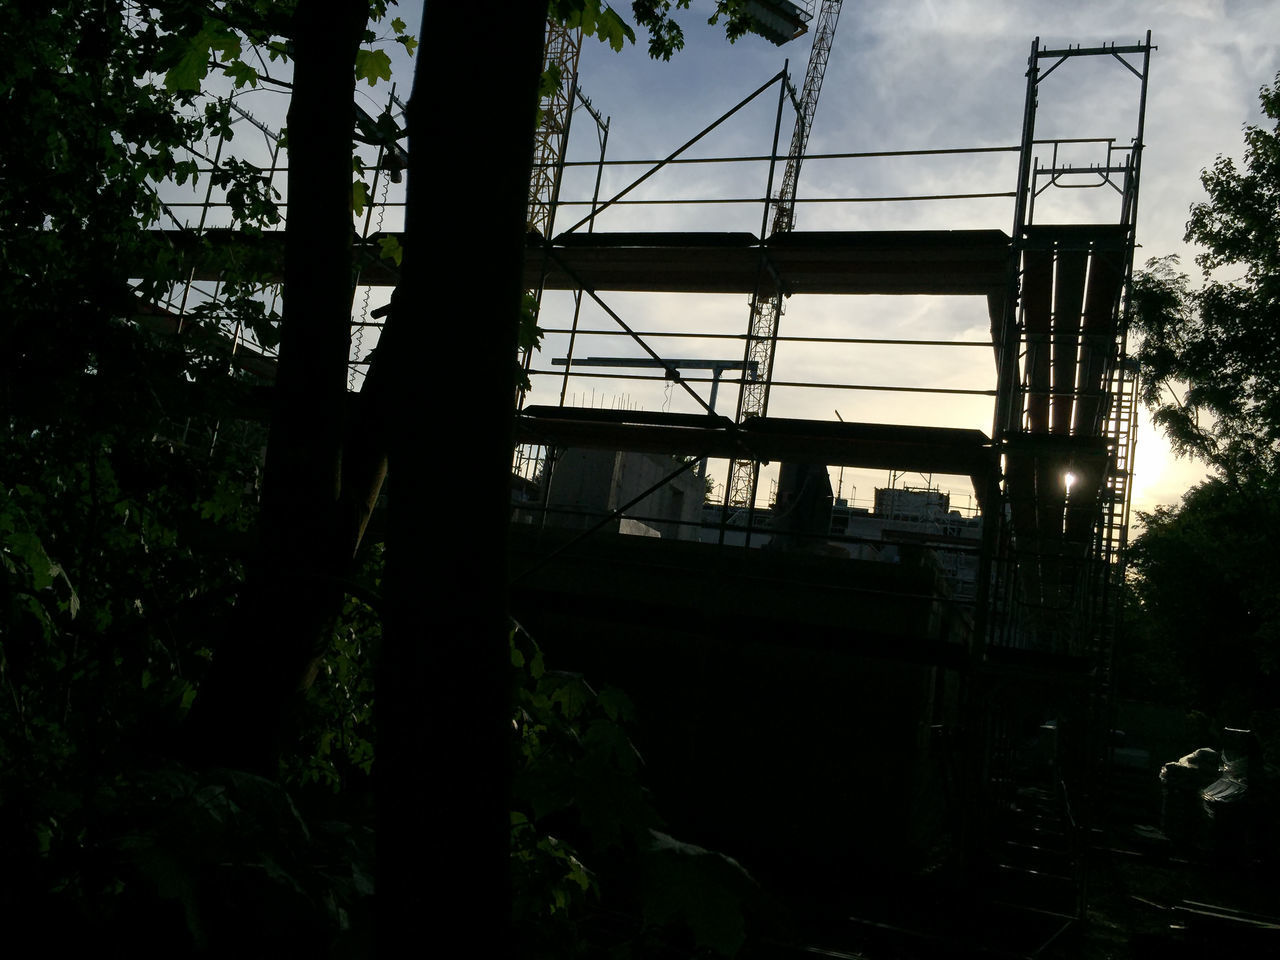 construction area in the evening Berlin Building Lot Building Site Construction Area Construction Site Eve Evening Evening Light Evening Sky Falsework Lot No People On Site Outdoors Scaffold Scaffolding Silhouette Site Sky Sky And Clouds Tree